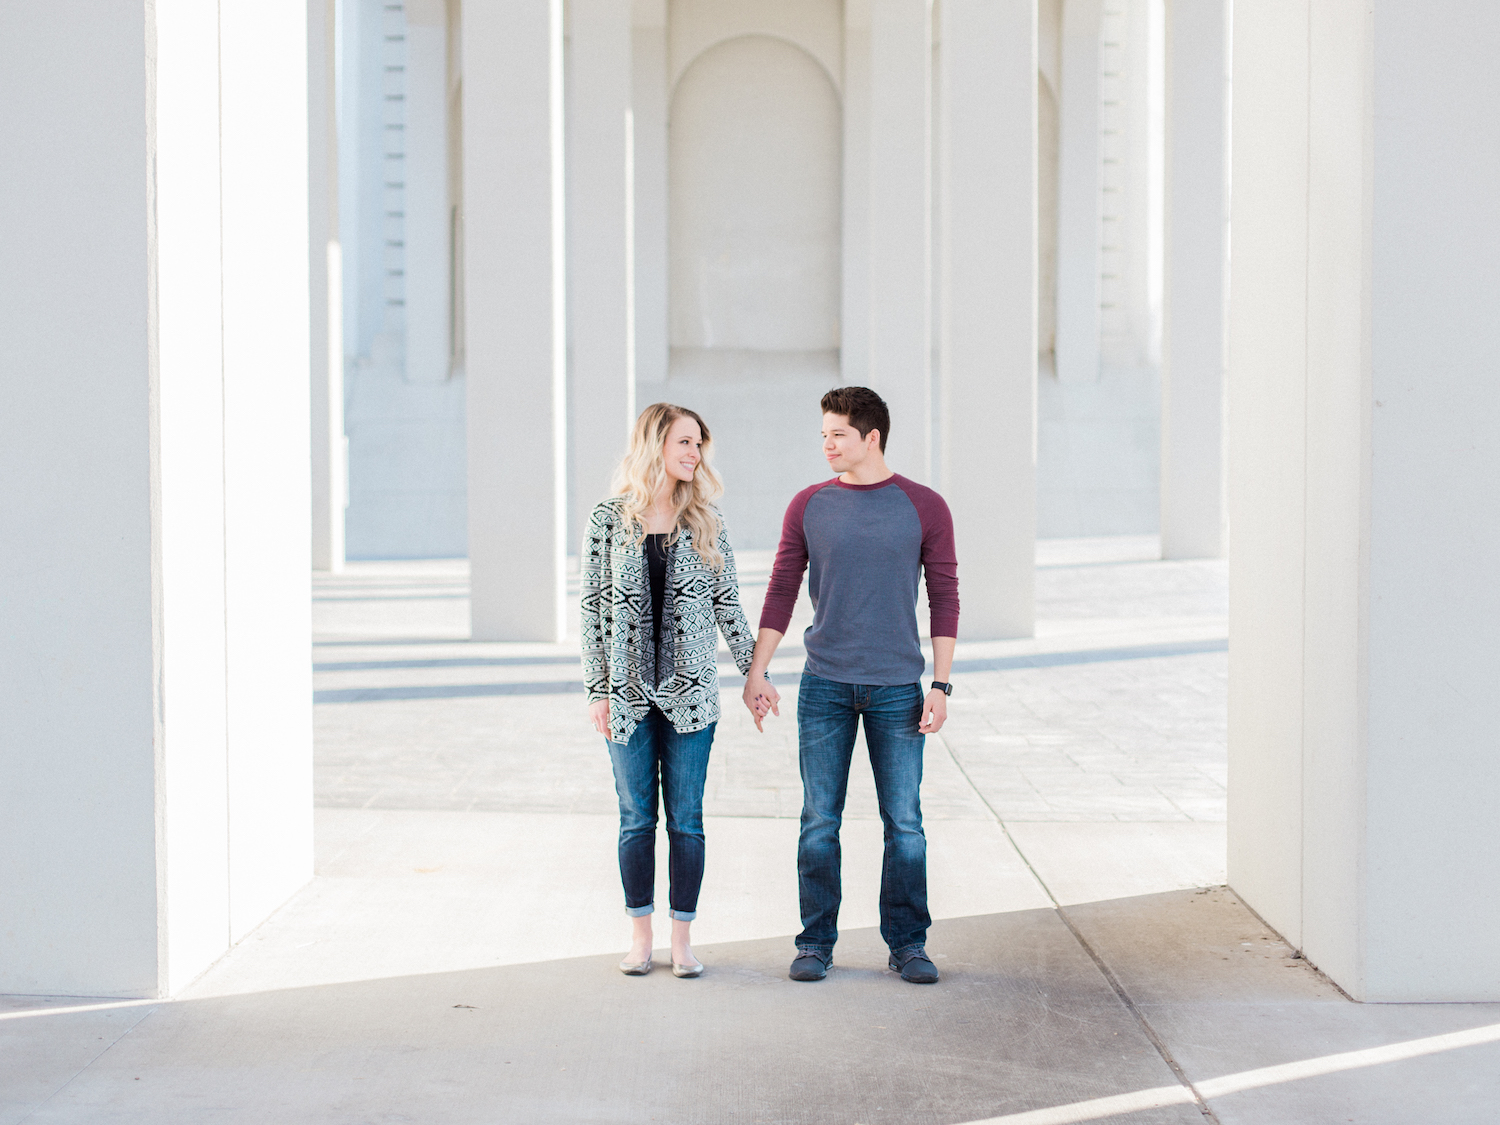 Fine art photography anniversary session in downtown Chattanooga, Tennessee by Kesia Marie Photography featuring lots of natural light, neutral colors, and beautiful architecture.